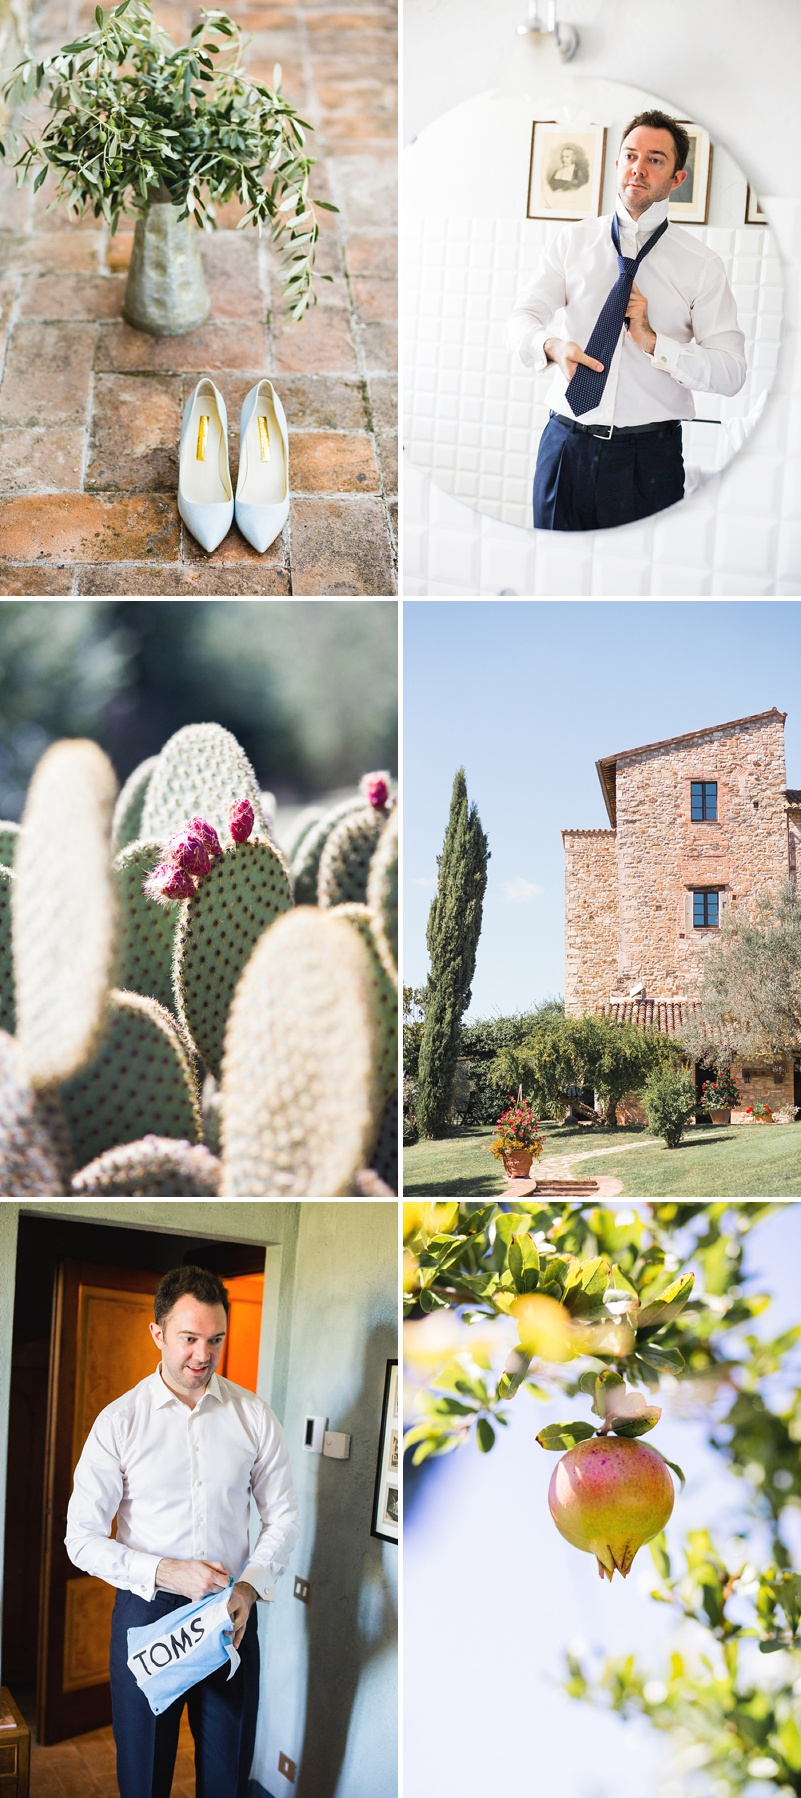 A Italian Destination Wedding In Tuscany with a Katya Katya Shehurina dress. 0000 A Tuscan Treasure